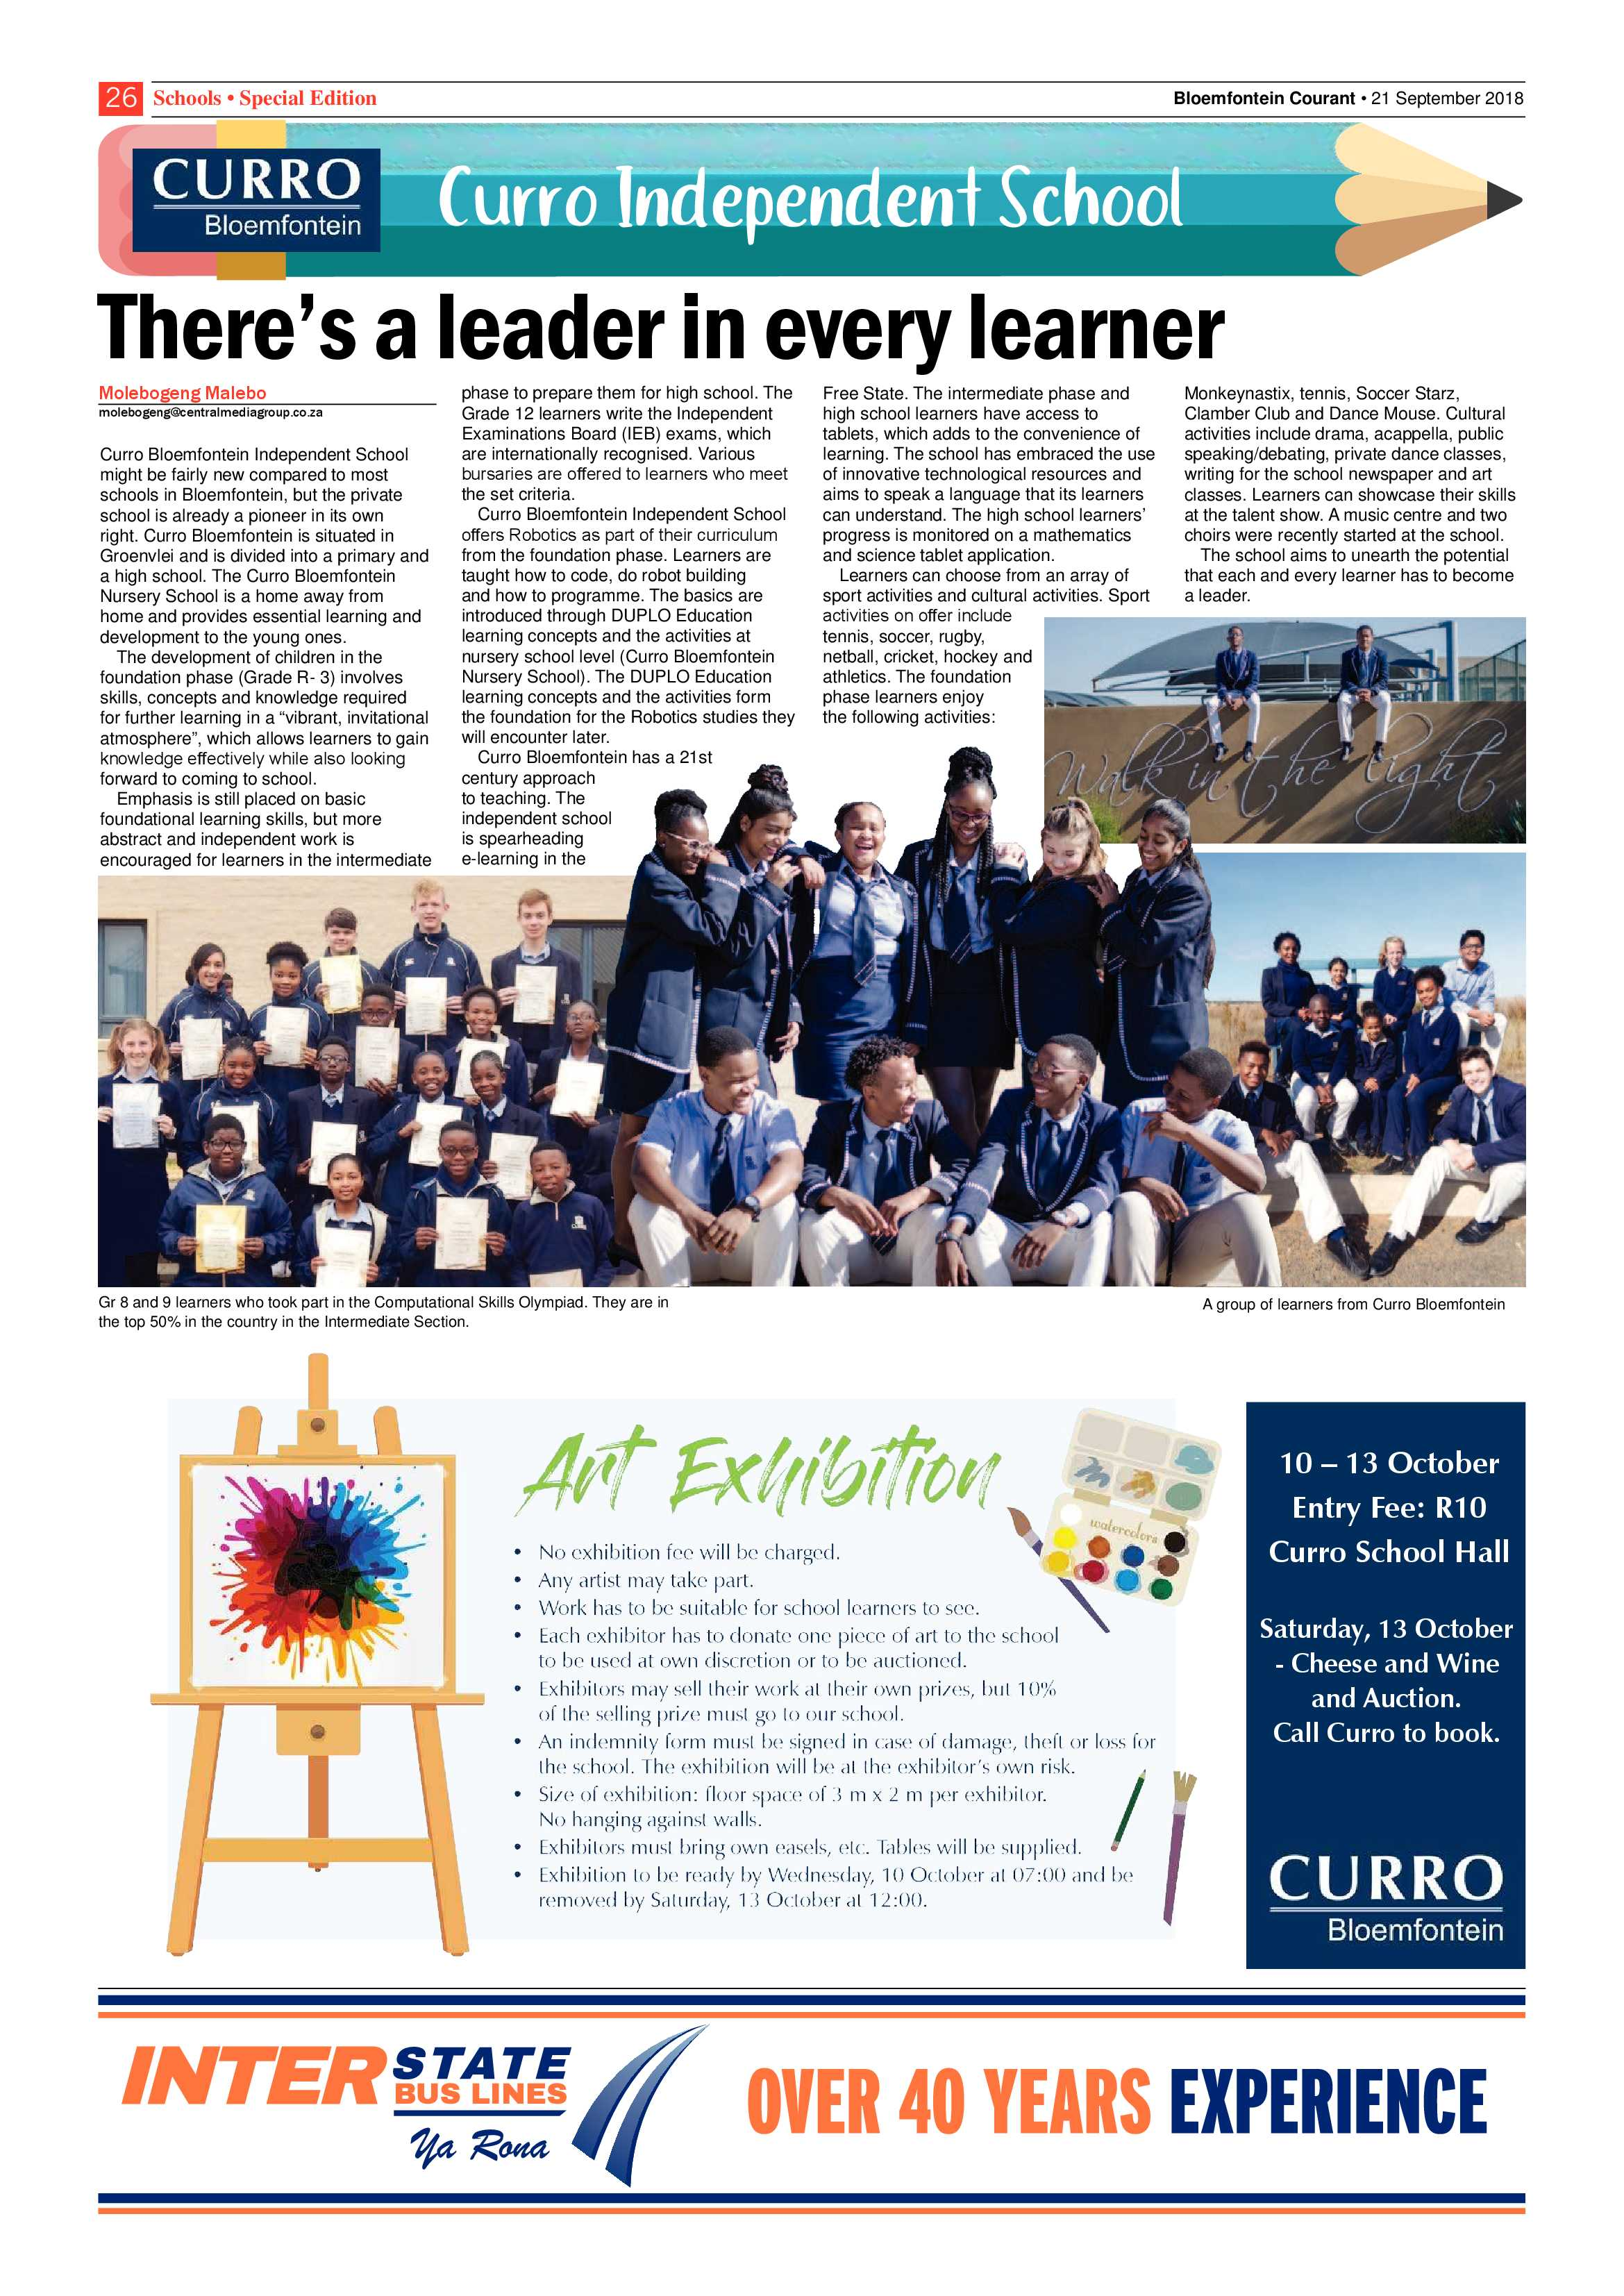 courant-schools-edition-20-september-2018-epapers-page-24